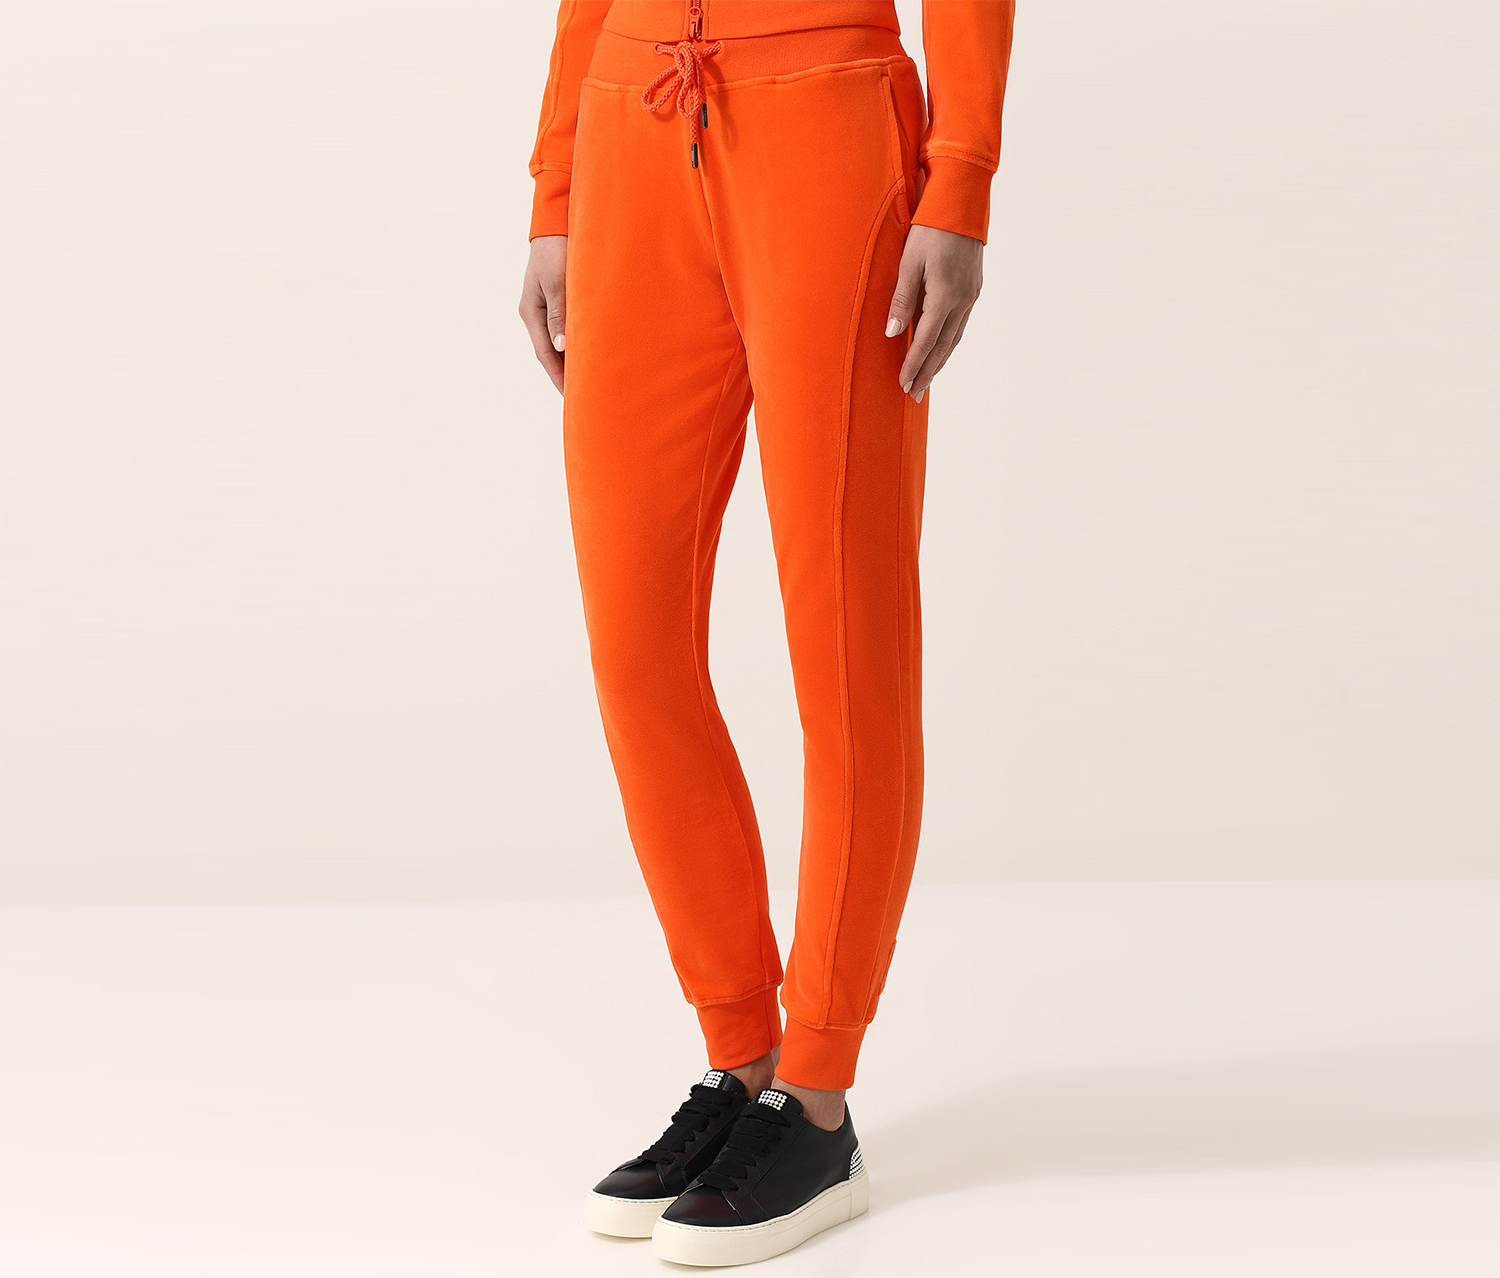 Puma Women's Velour Fitted Track Pants, Flame